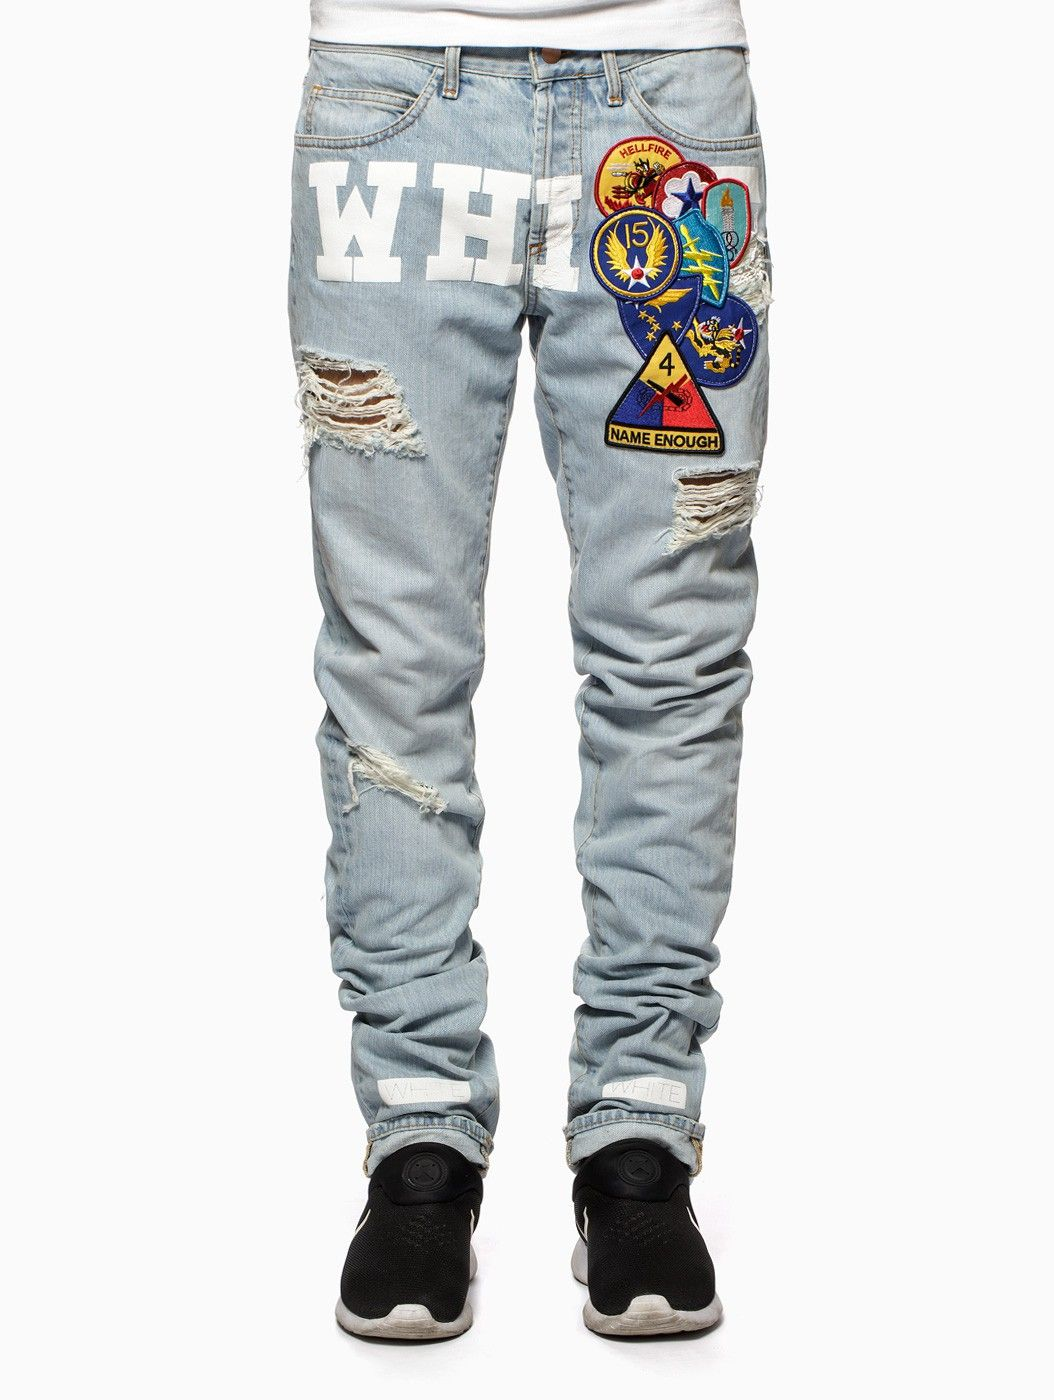 5ea29bce0ef5 Embroidered vintage denim pants from the S S2015 Off-White c o Virgil Abloh  collection.